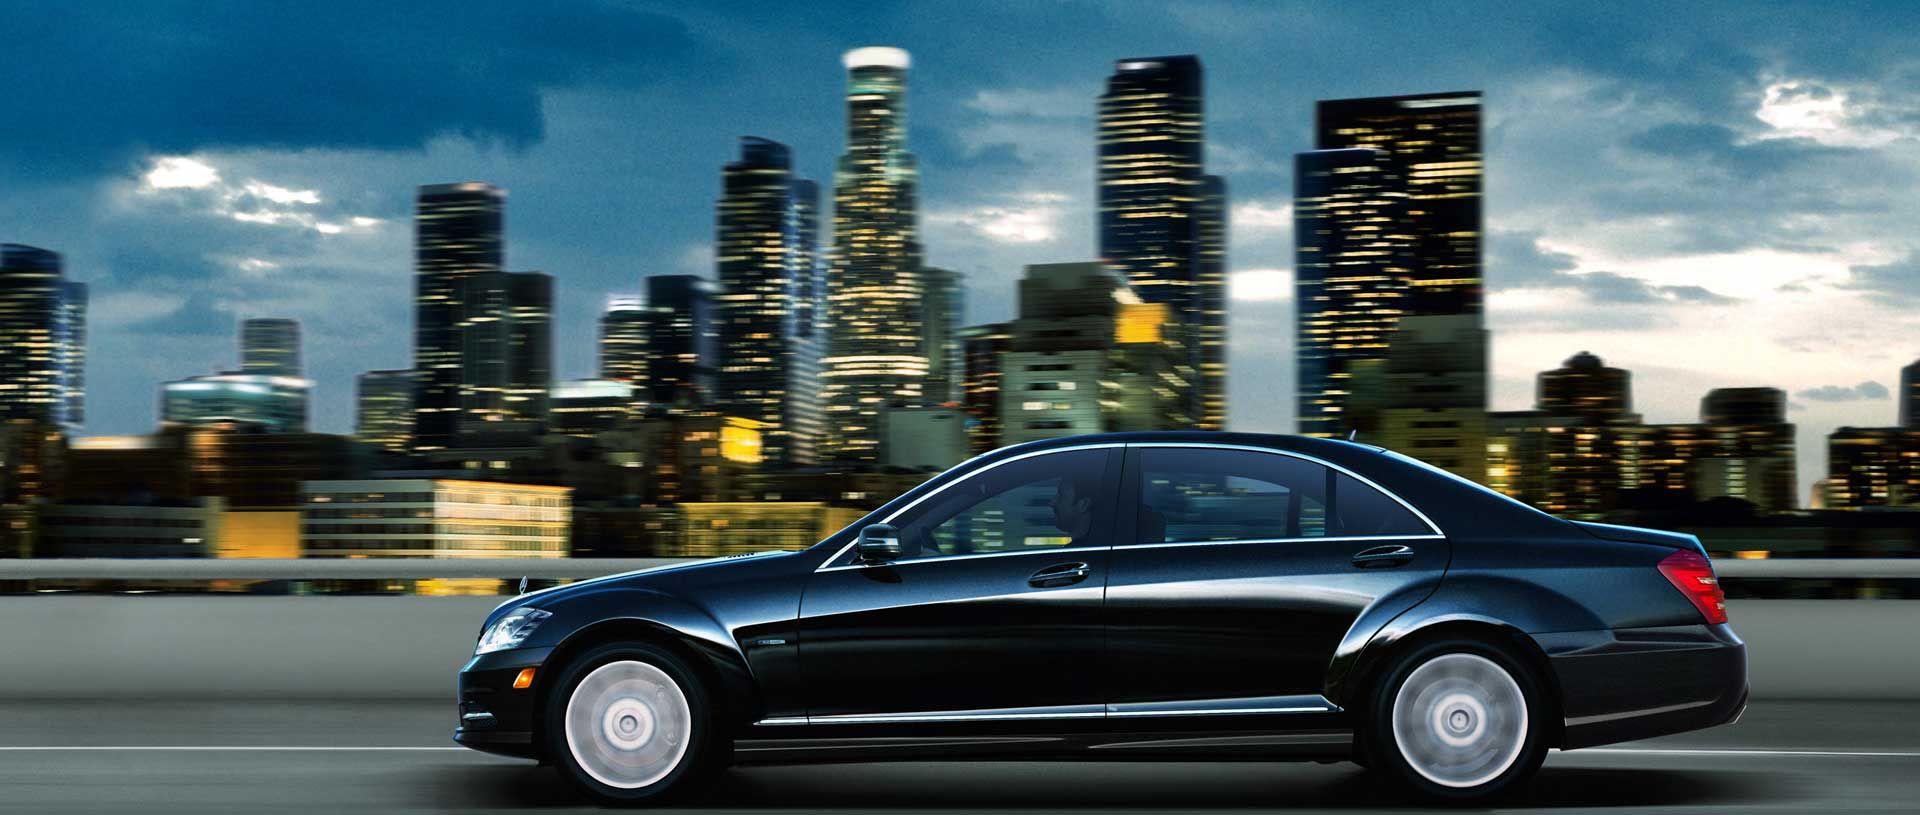 london chauffeur services quote